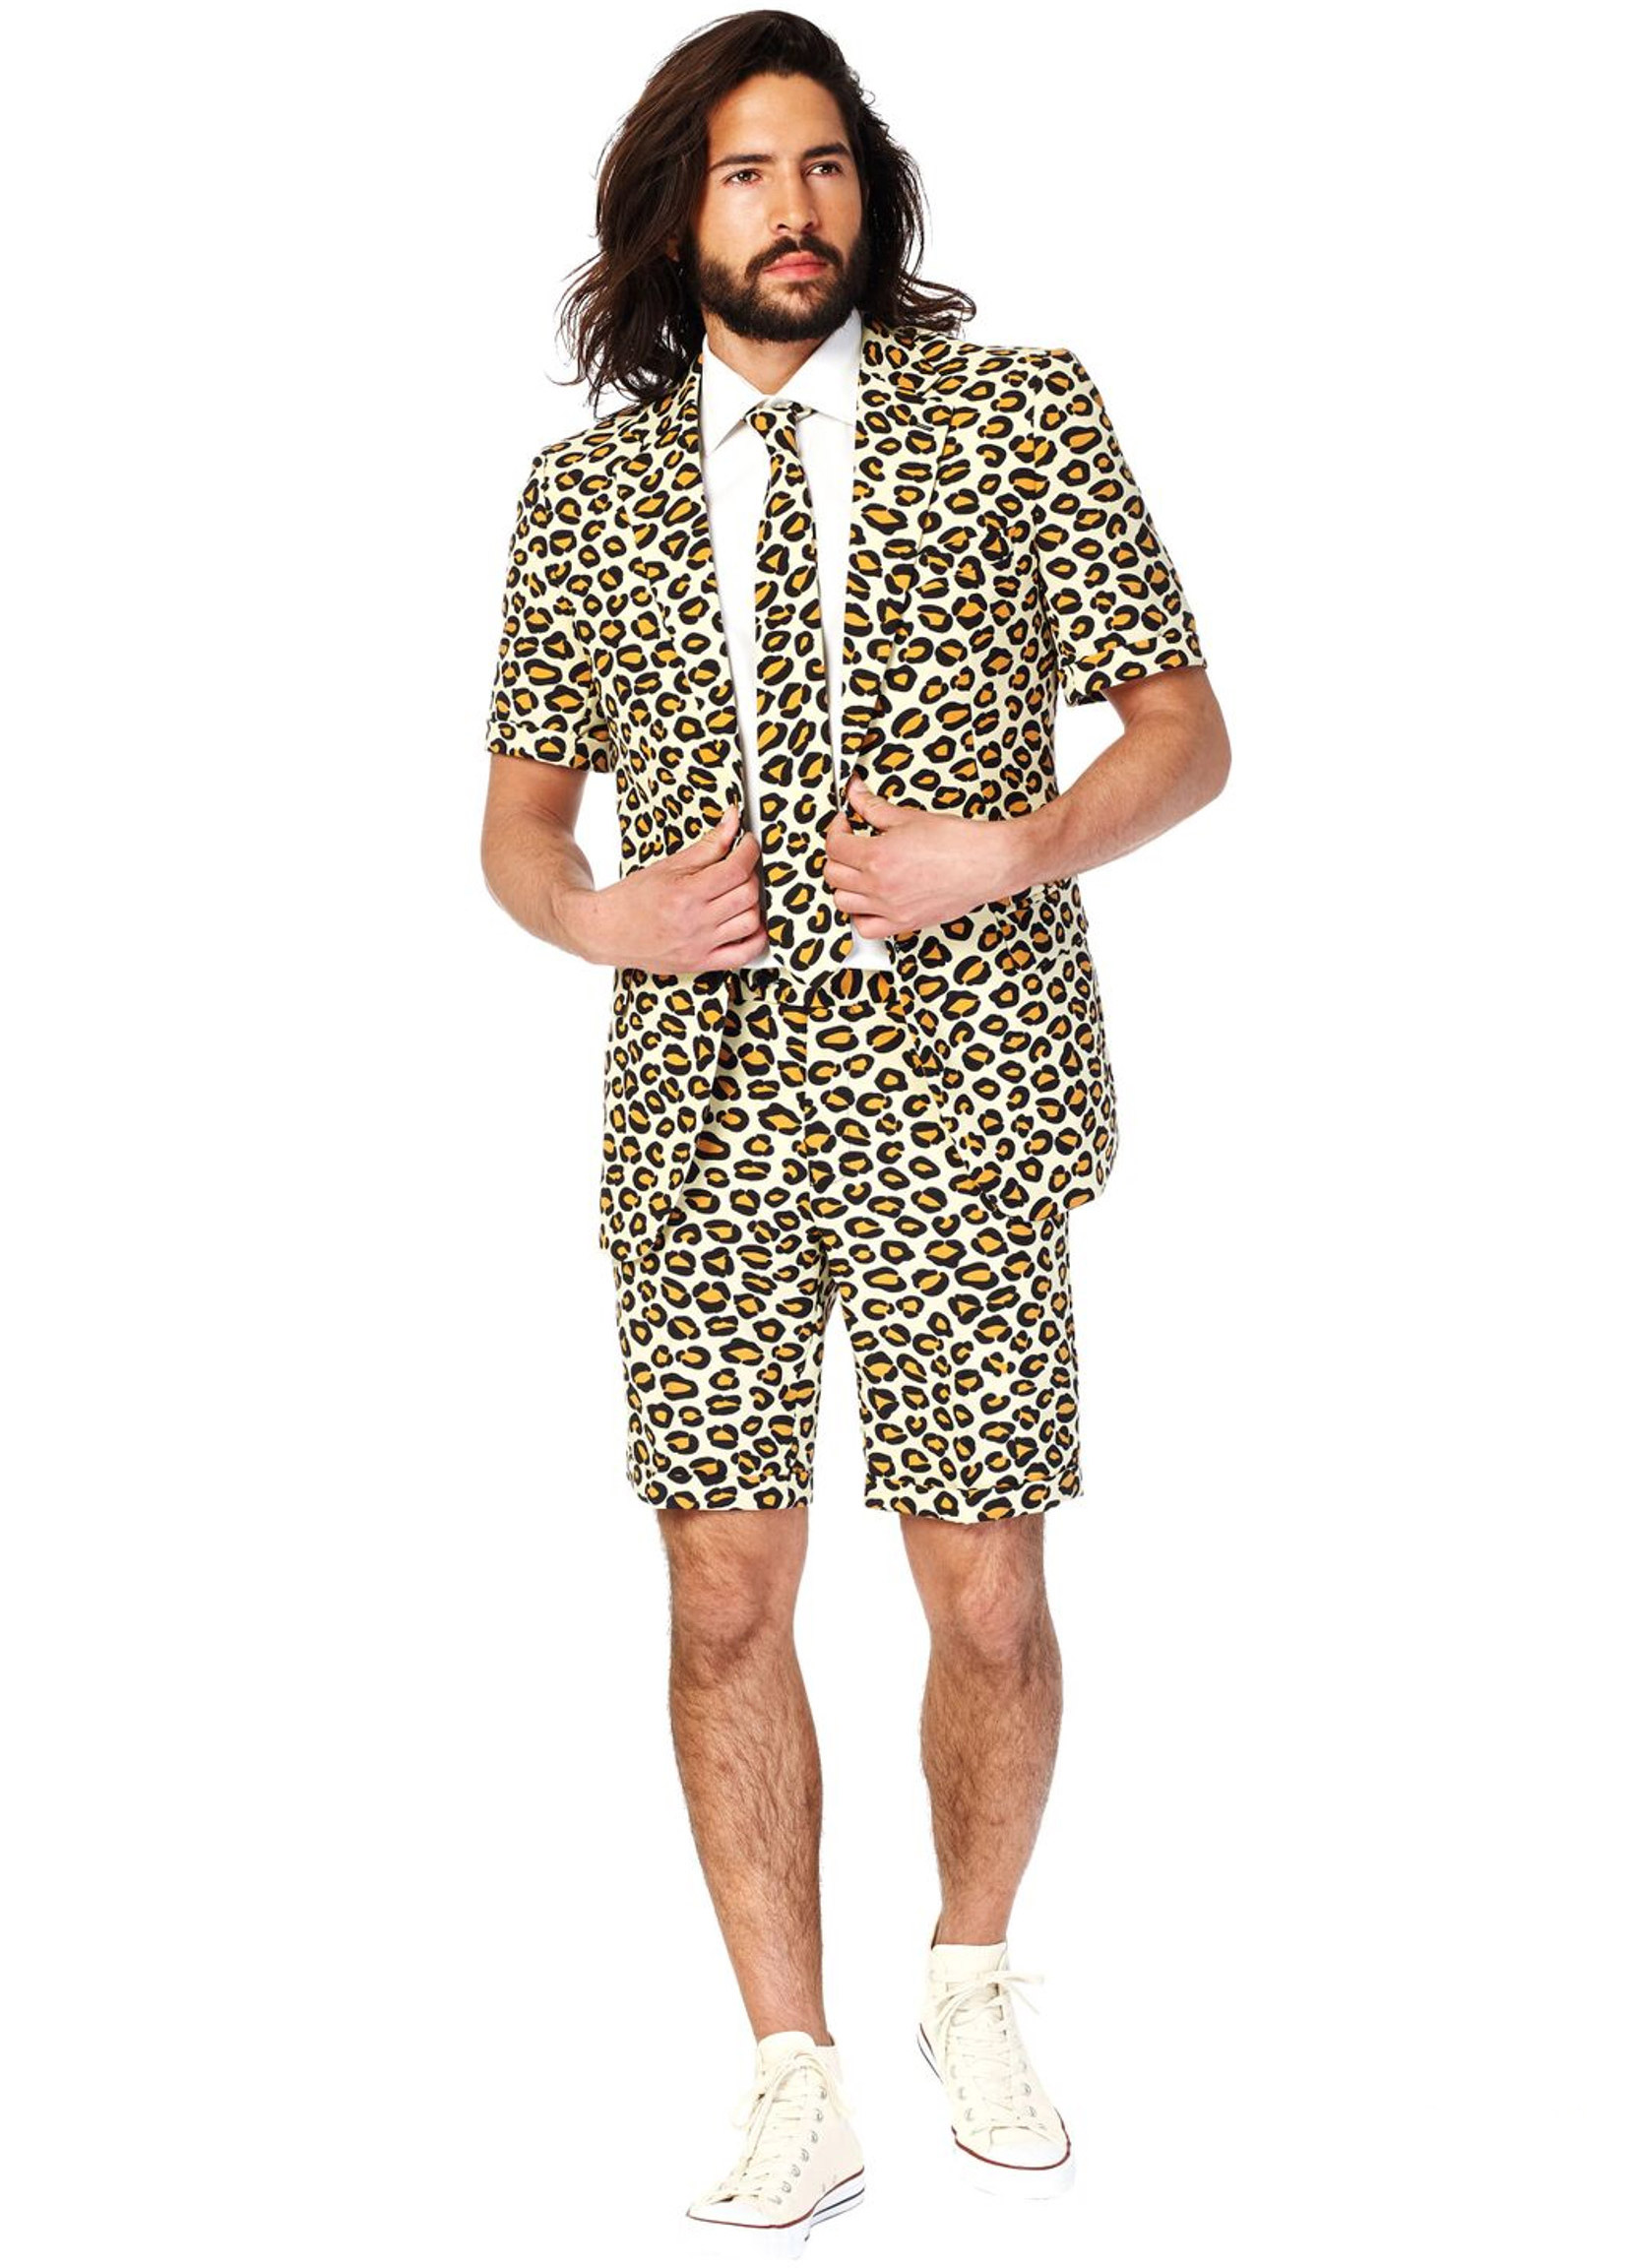 costume d 39 t mr jaguar homme opposuits deguise toi achat de d guisements adultes. Black Bedroom Furniture Sets. Home Design Ideas